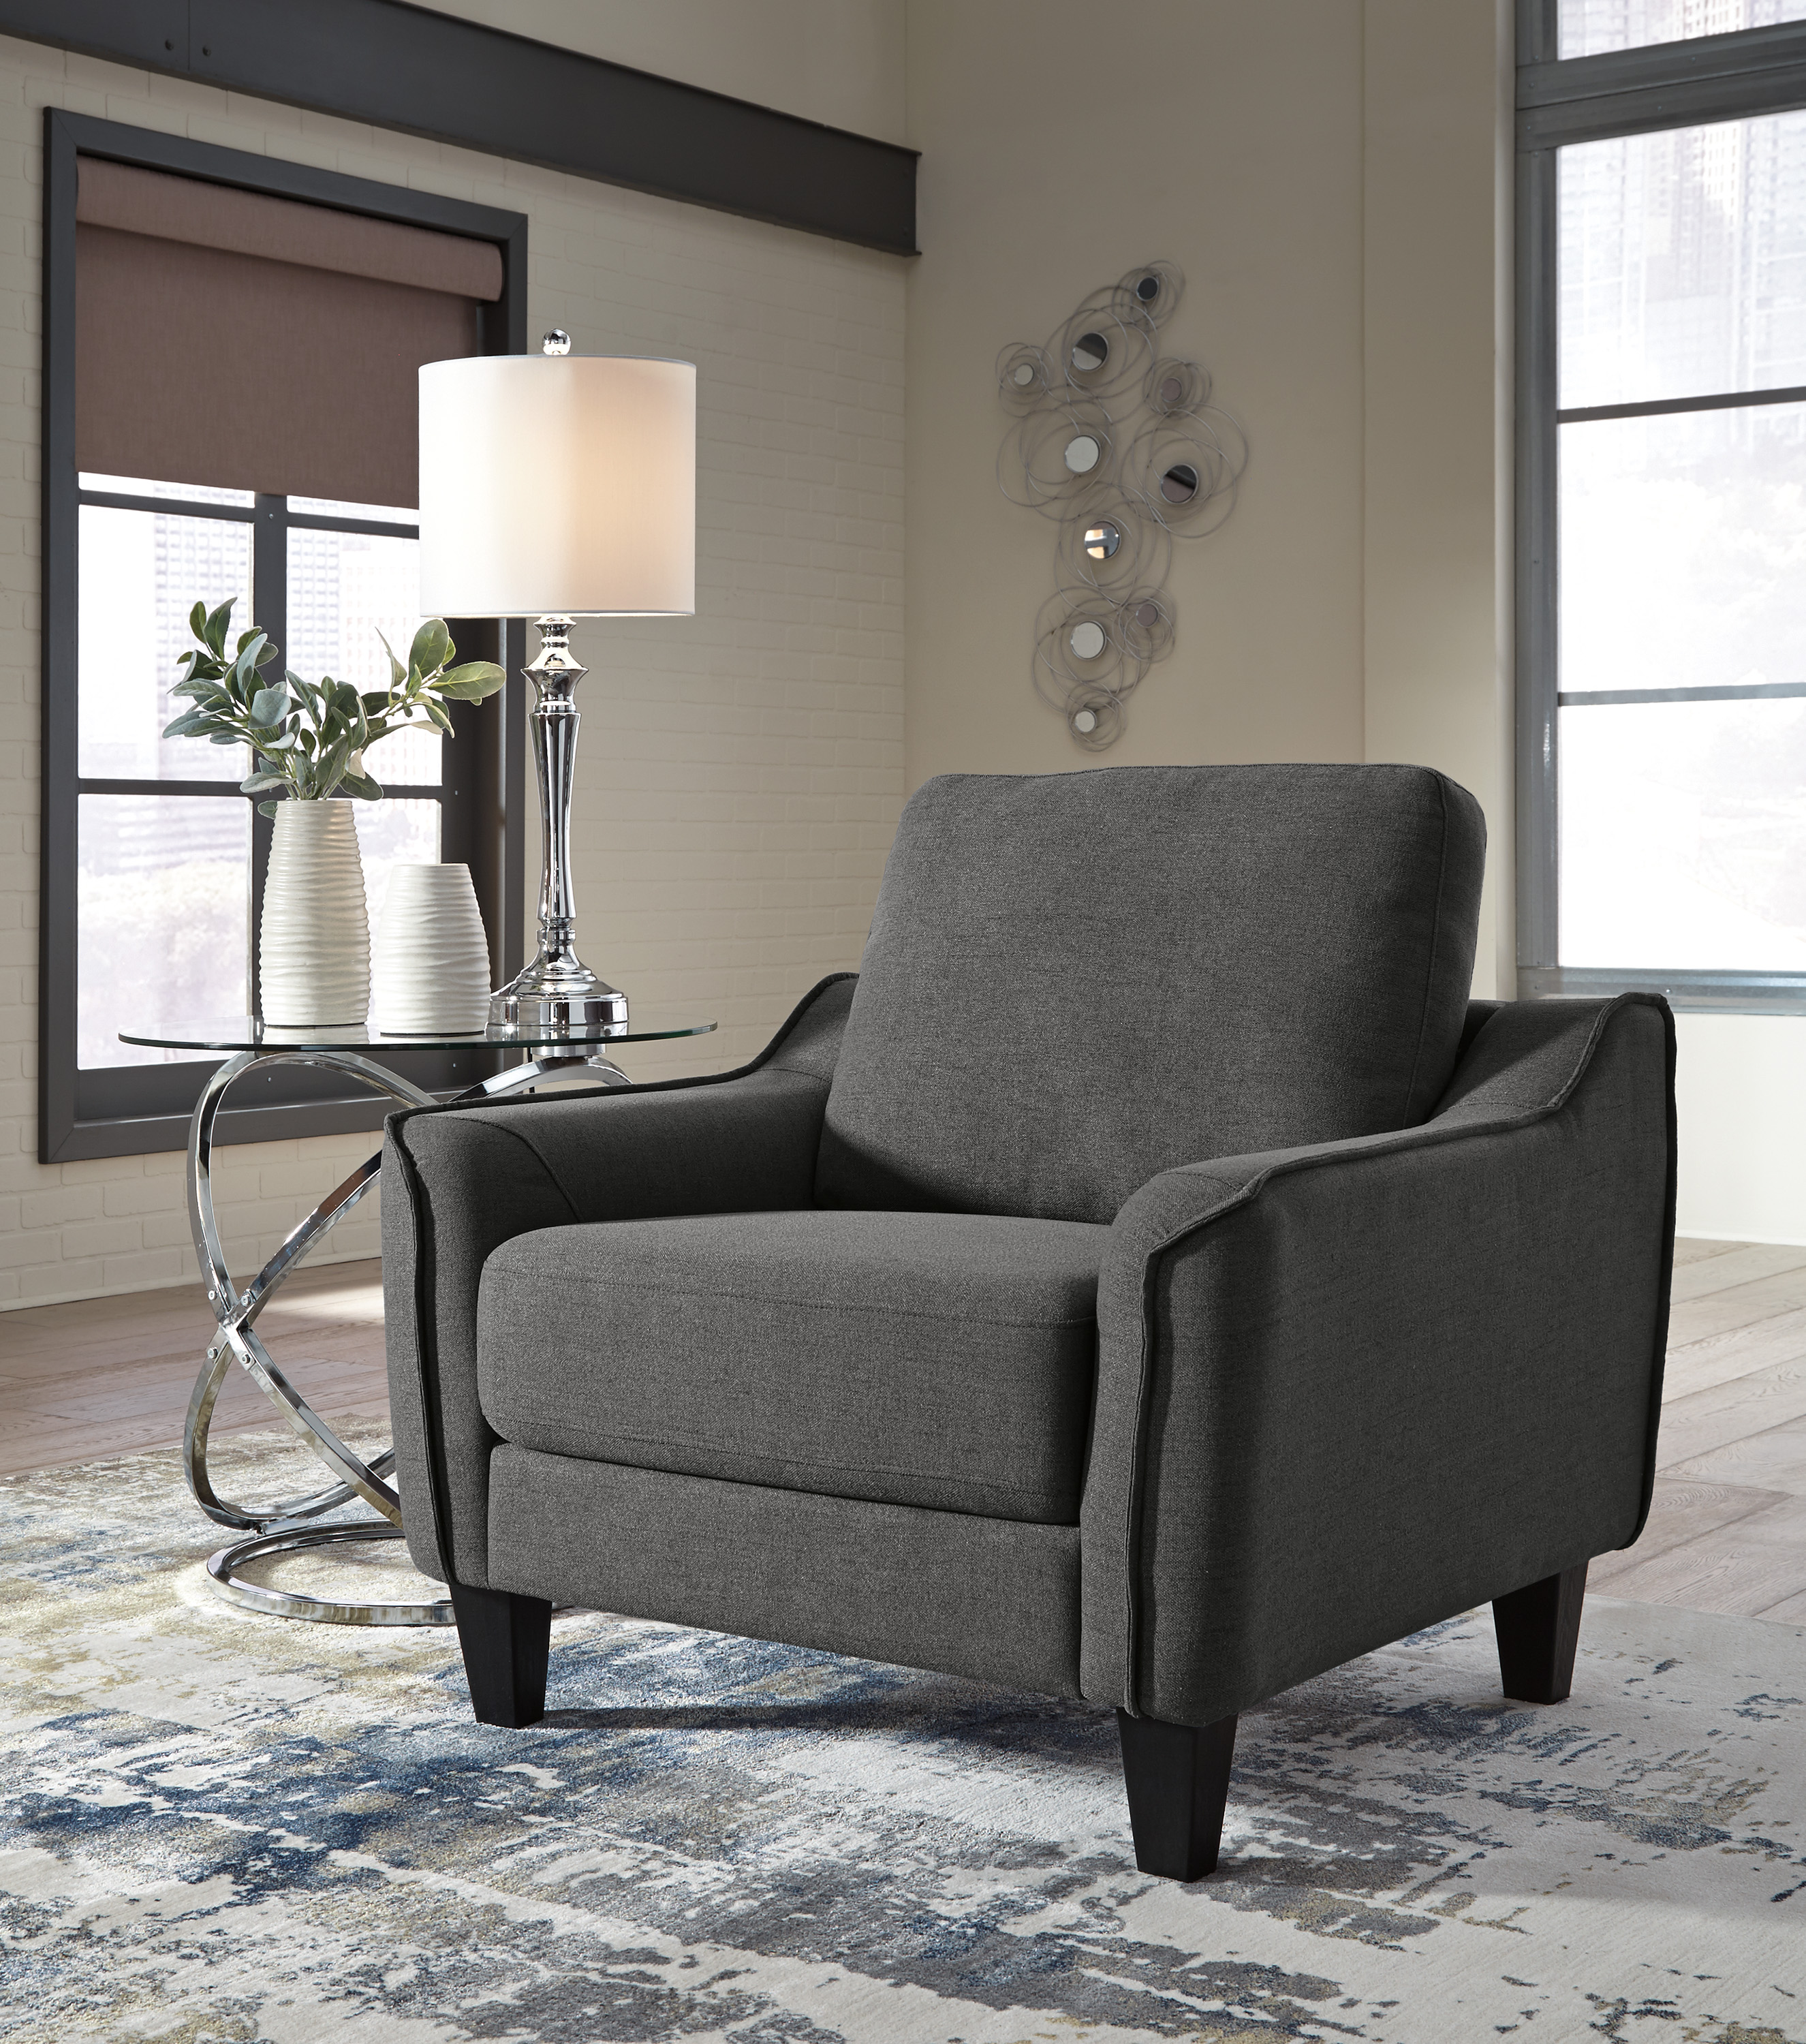 Cheap Furniture Delivered: Jarreau Gray Sofa Chaise Sleeper FREE DELIVERY! CLEARANCE